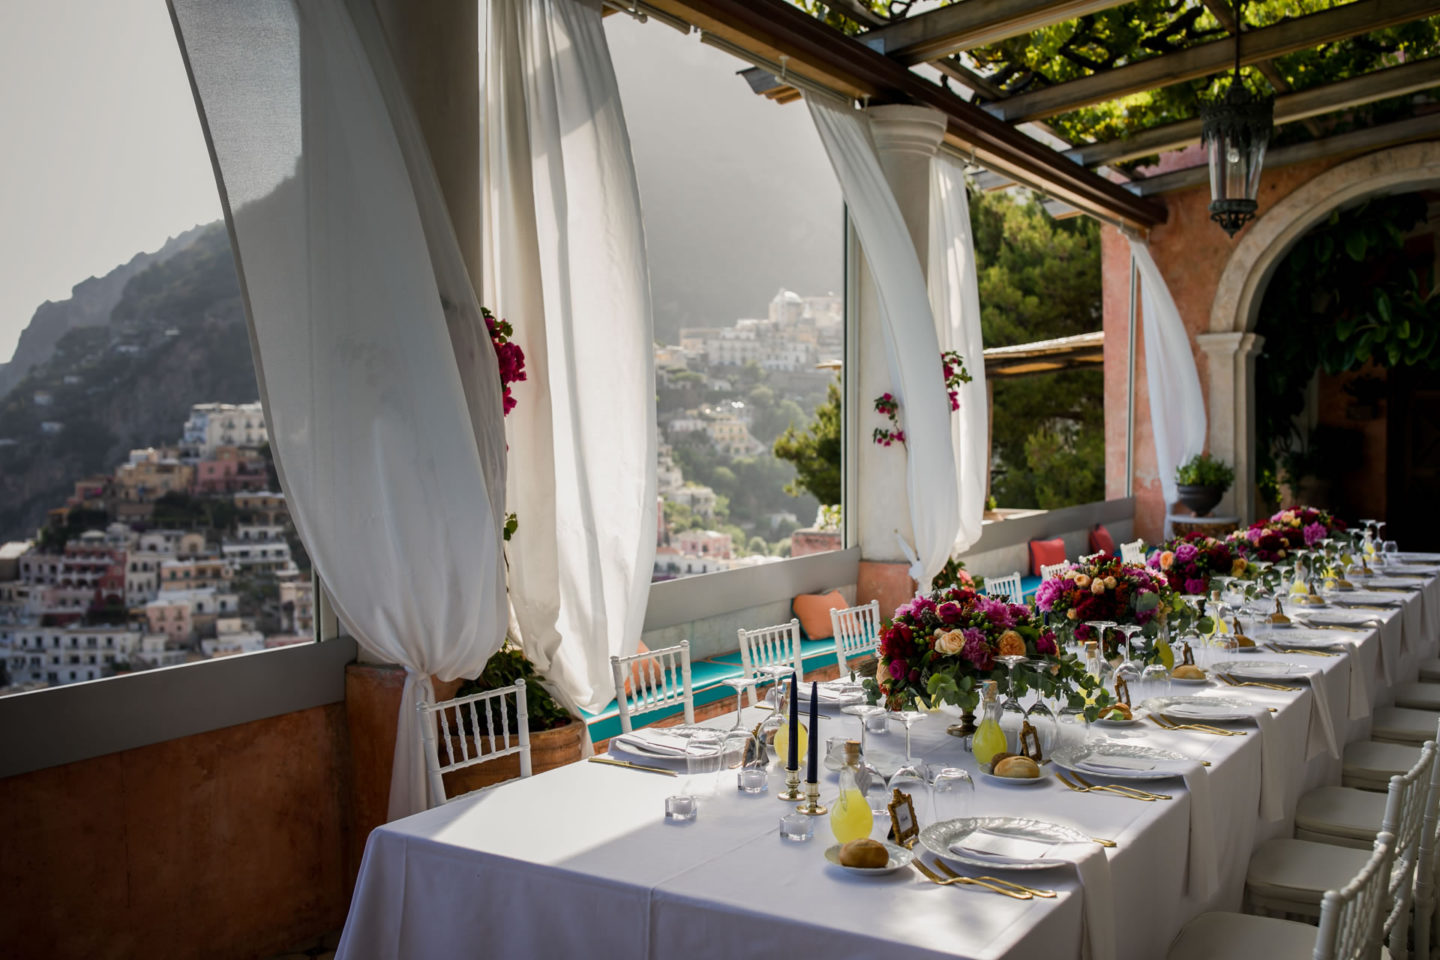 Table :: Wedding in Positano. Sea and love :: Wedding photographer based in Florence Tuscany Italy :: photo-53 :: Table